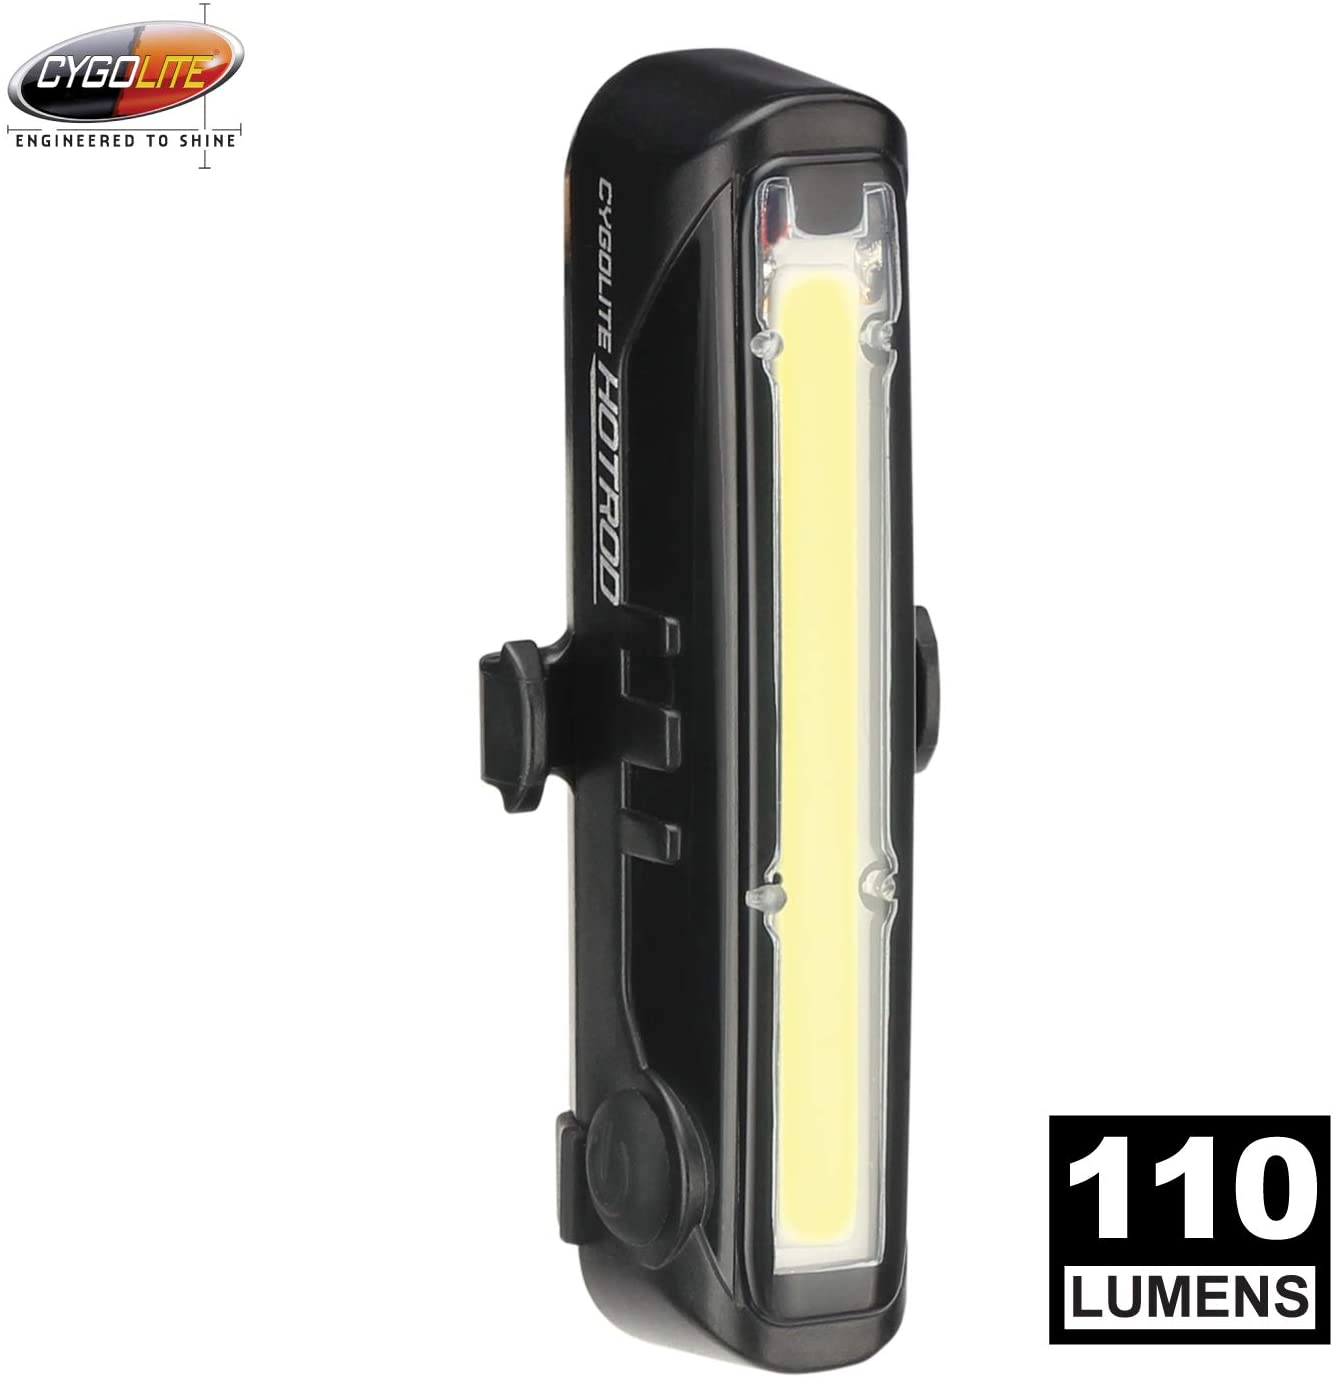 Cygolite Hotrod Front 110 Lumen Bike Light 3 Night 3 Daytime Modes Sleek Durable Design IP64 Water Resistant Sturdy Flexible Mount USB Rechargeable Front Light for Road Commuter Bicycles